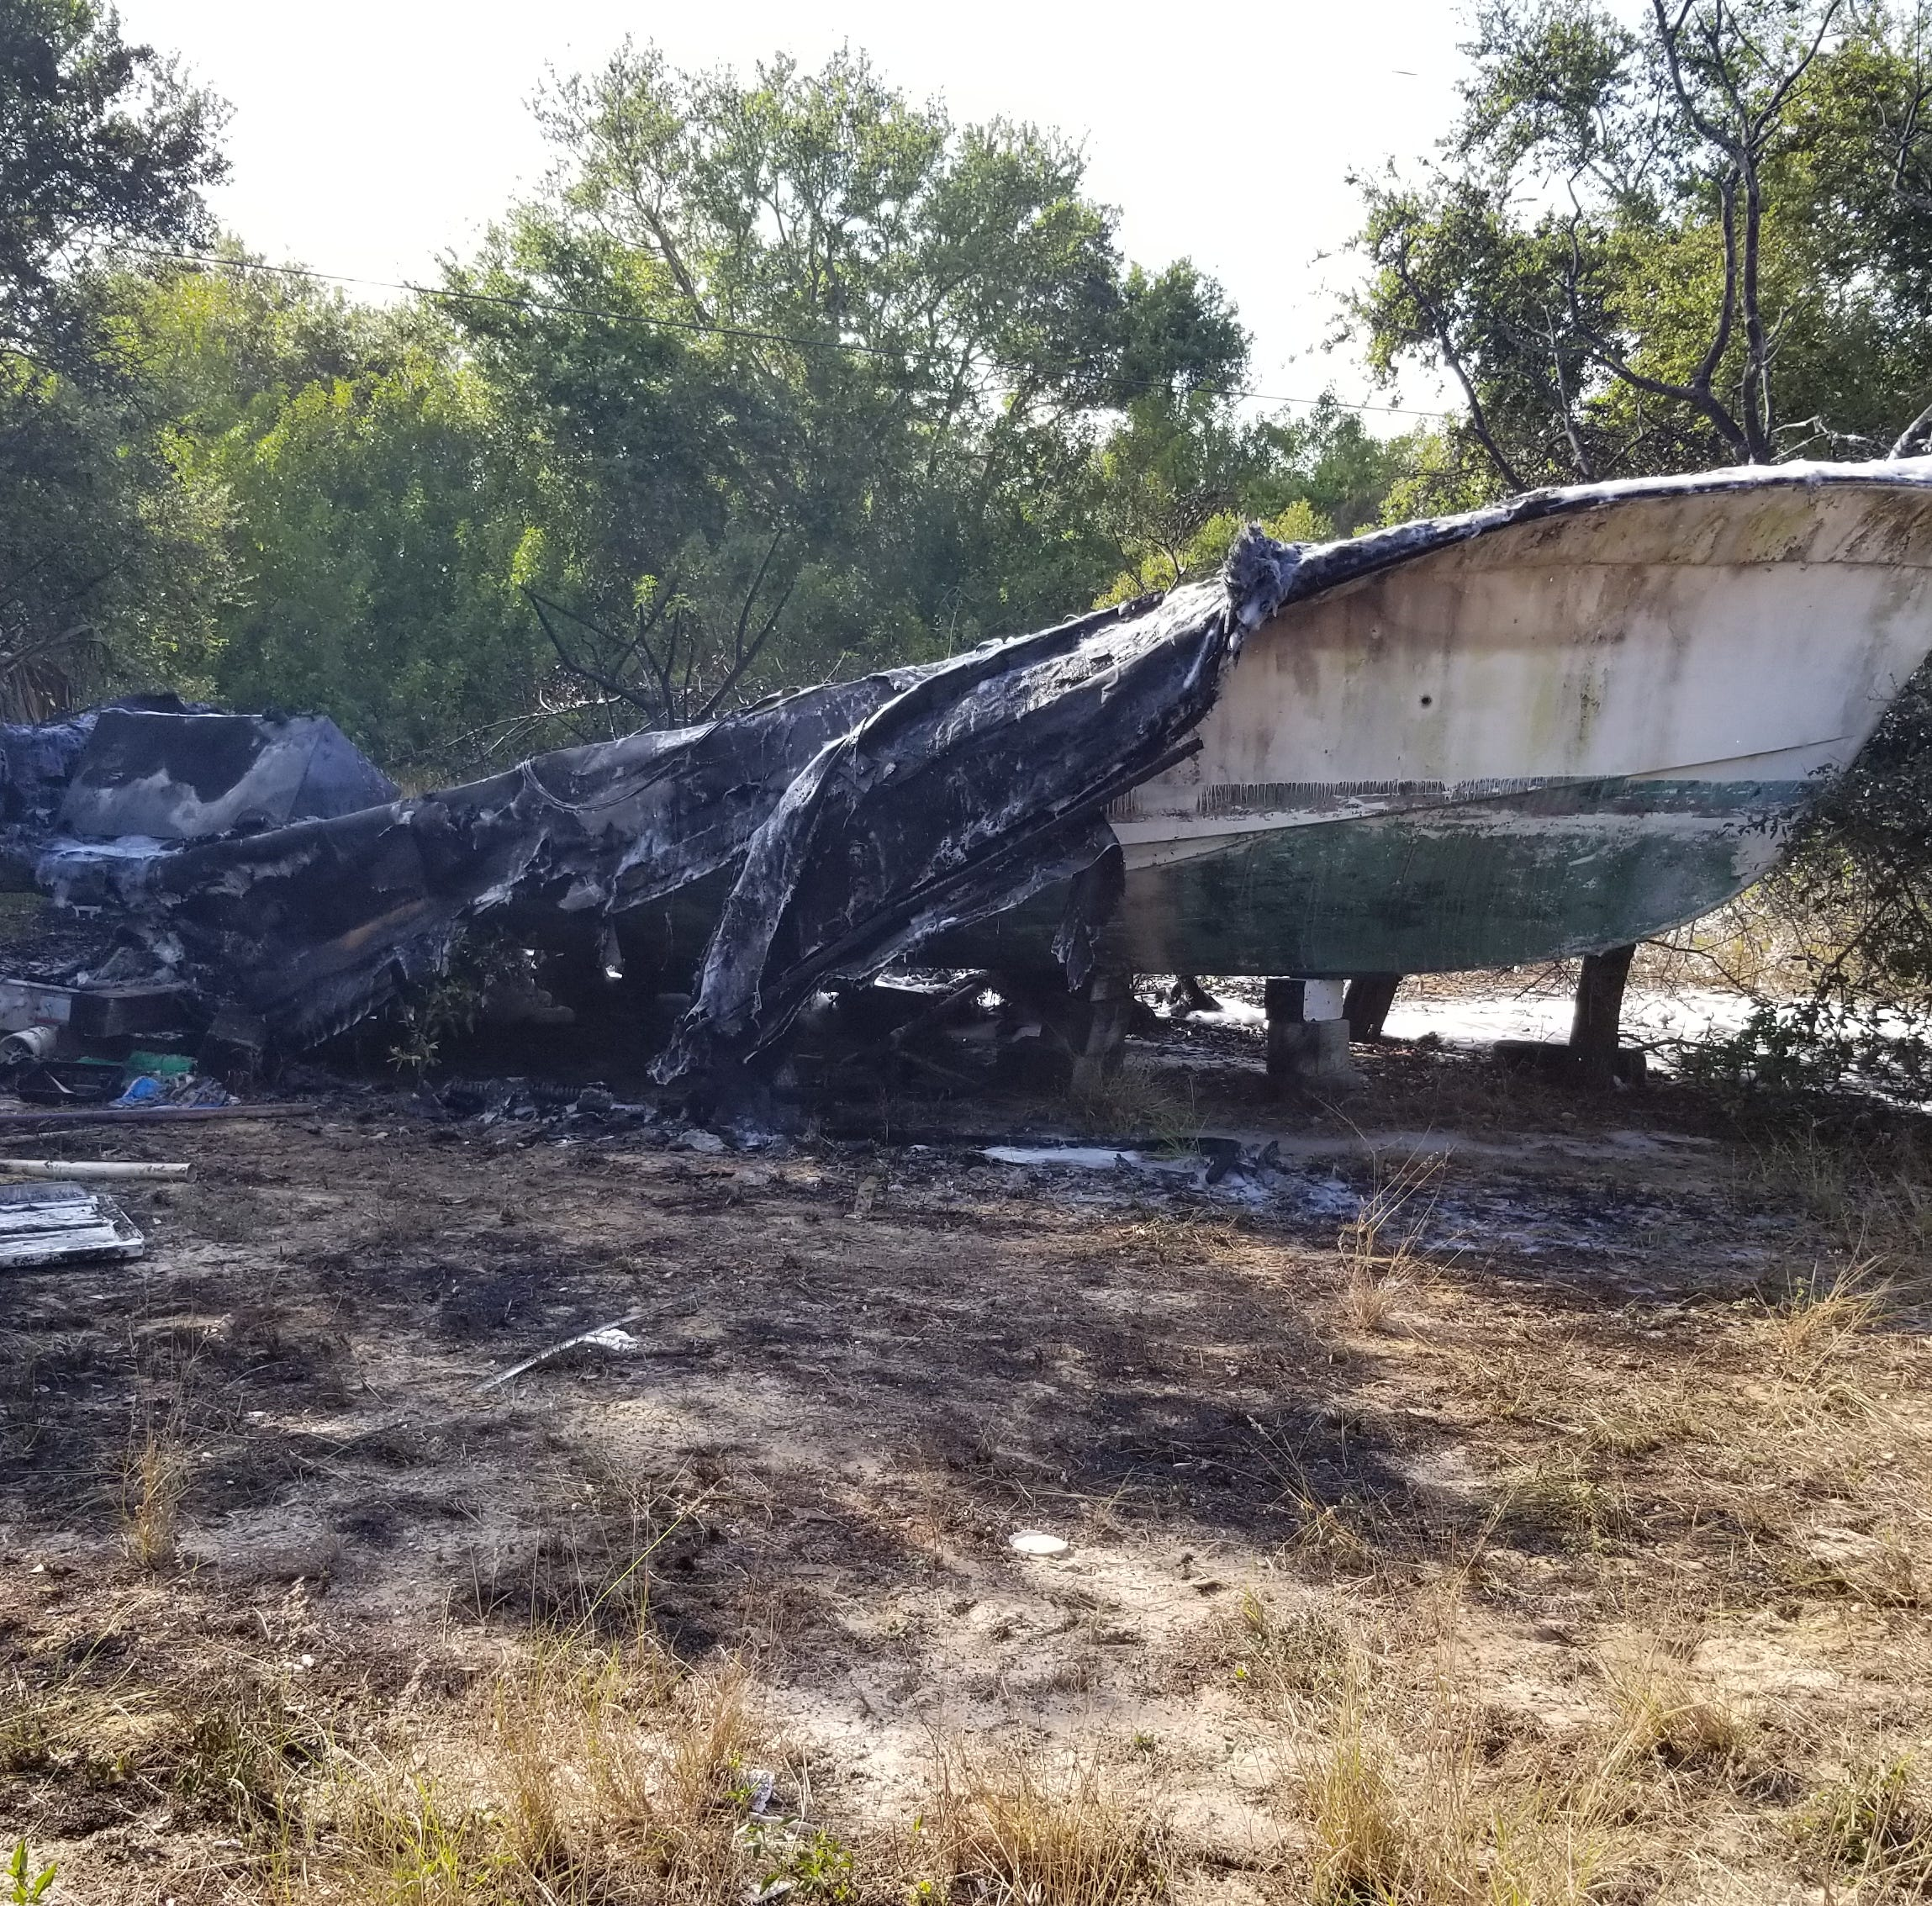 Abandoned boat on fire in Sebastian after reported explosion, thick black smoke in area